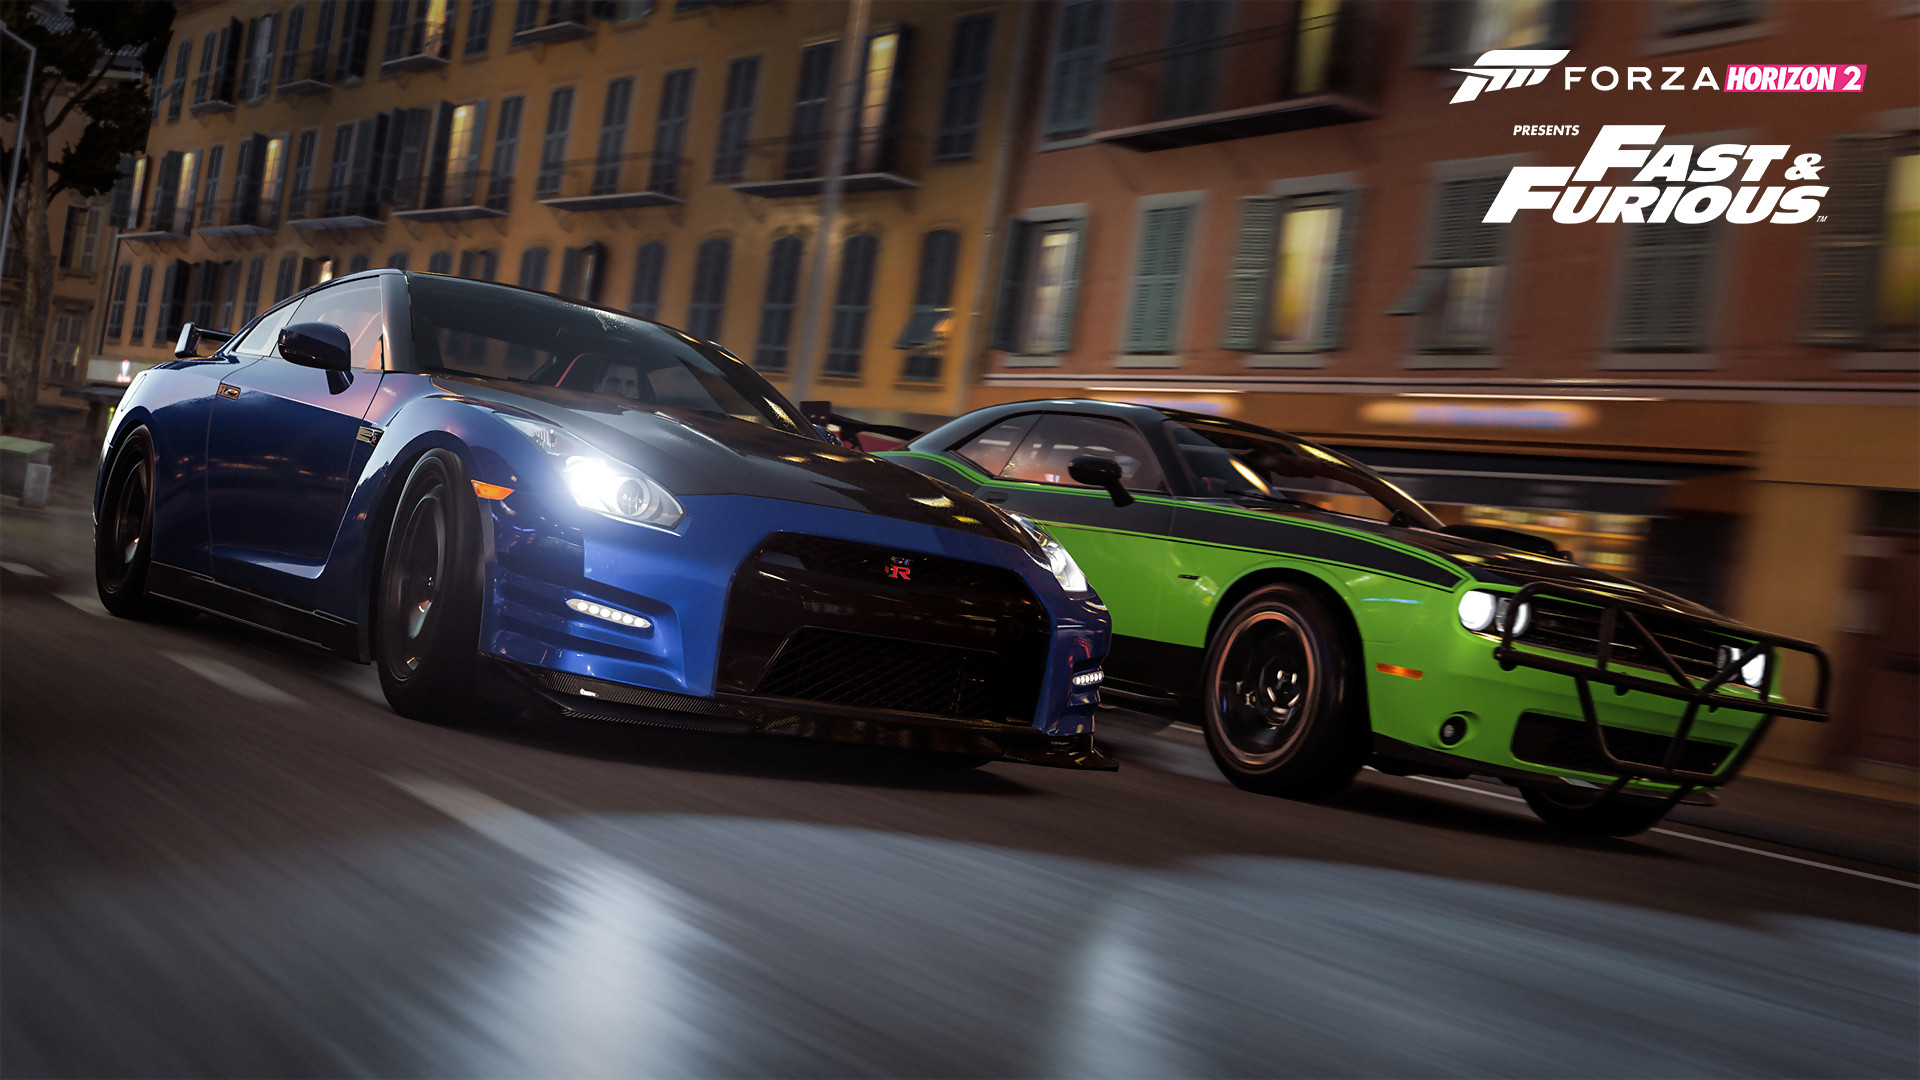 Forza Horizon 2 : Le pack Fast and Furious 7! - Blog ...